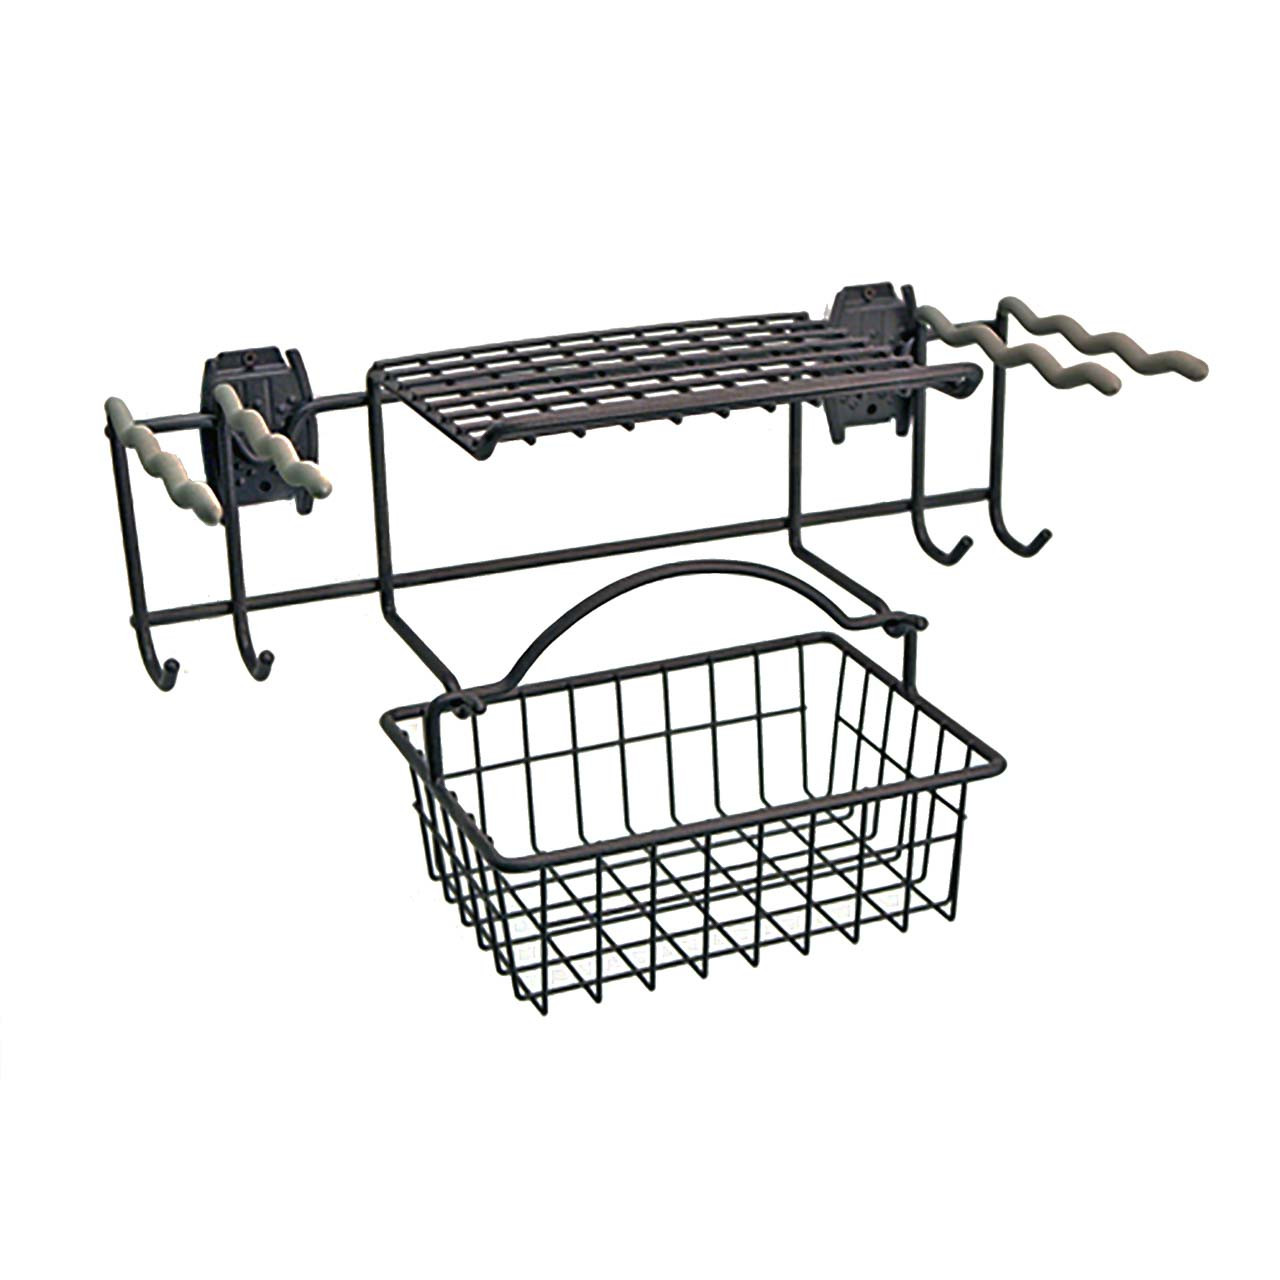 Garden Rack with Basket